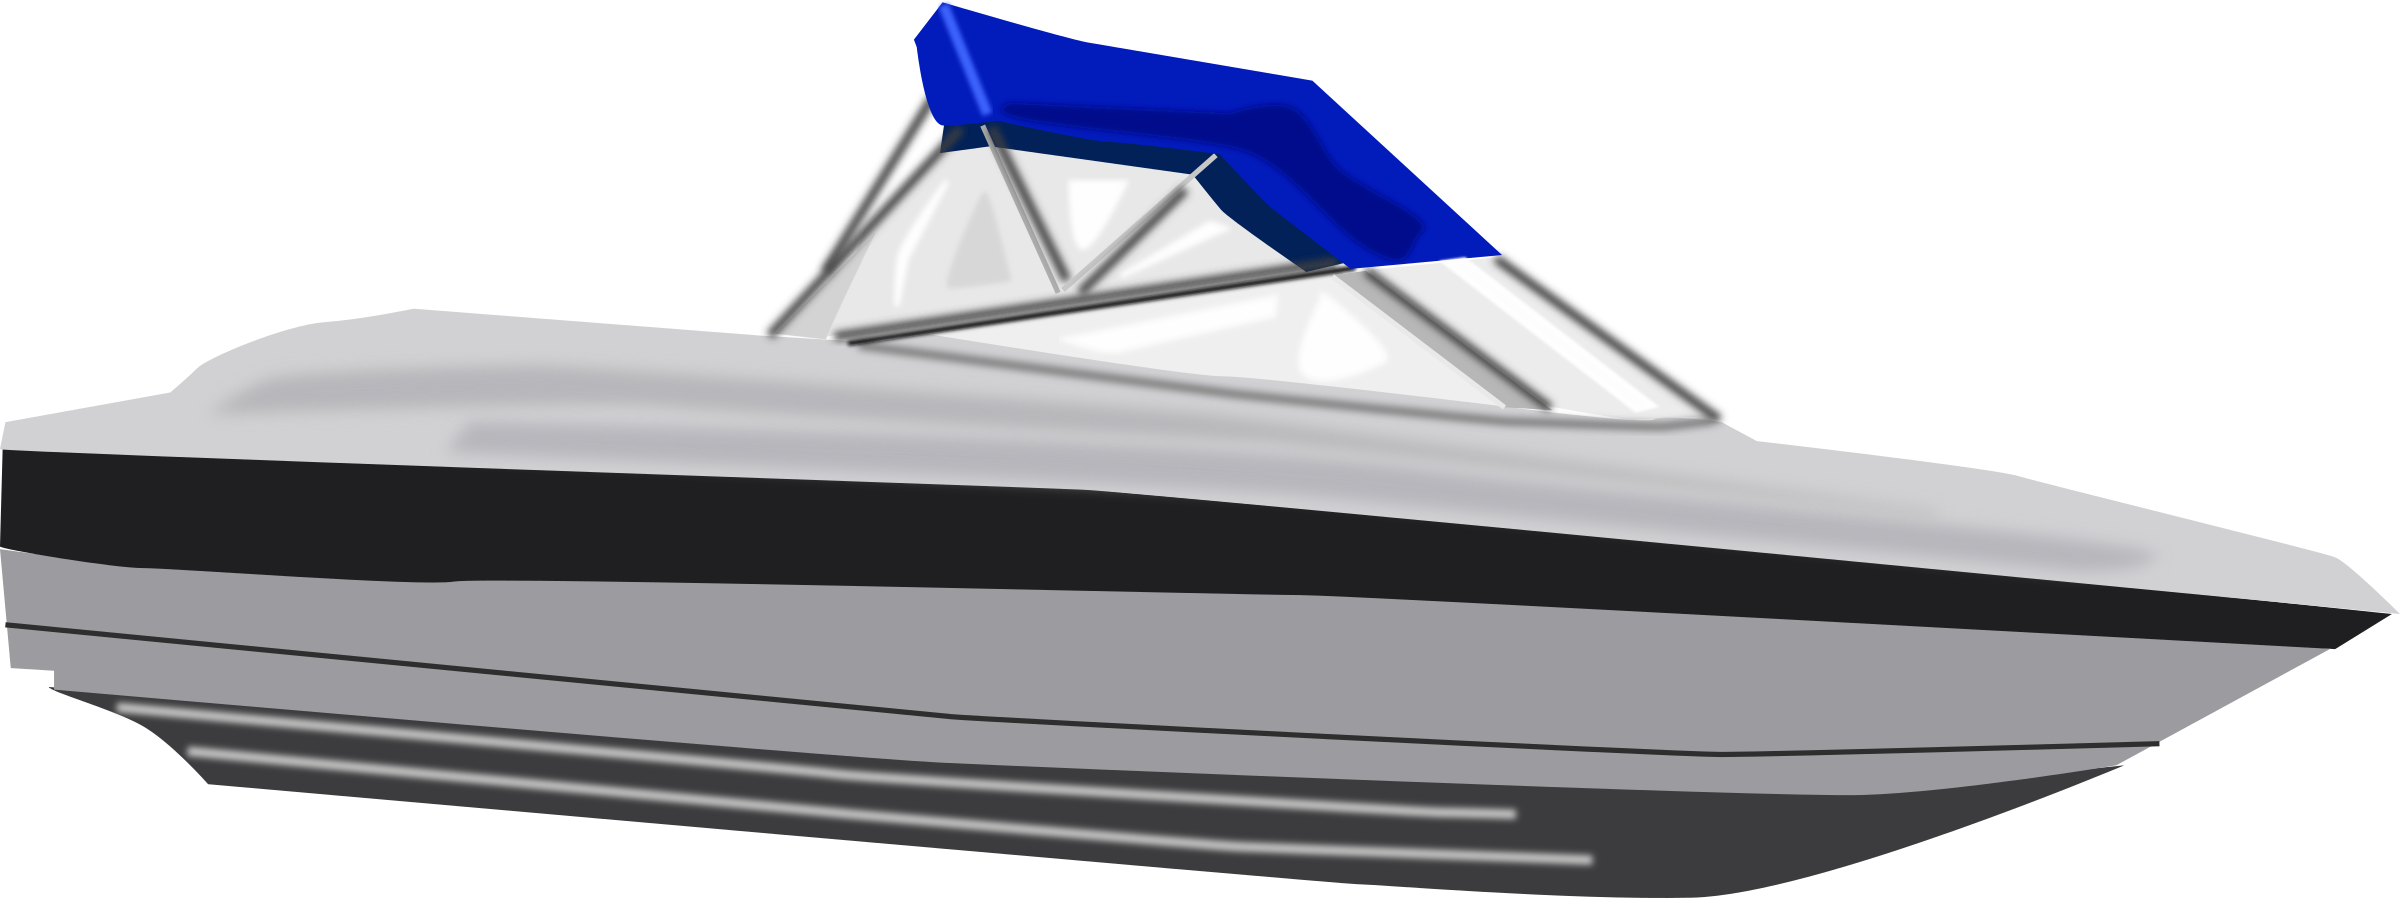 Speed boat png. Icons free and downloads